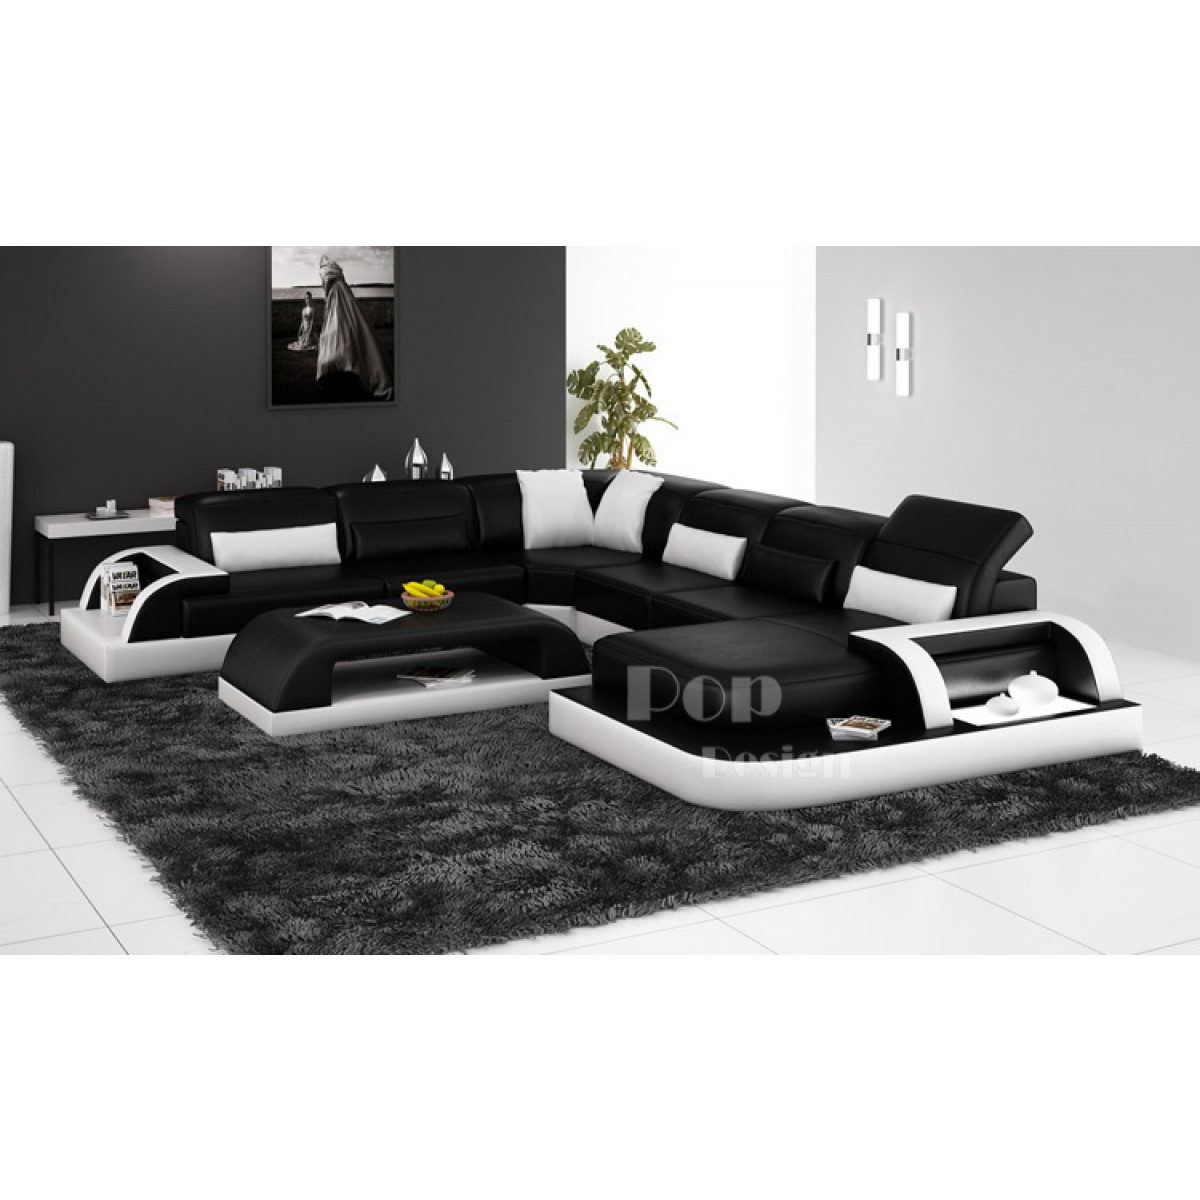 Canap d 39 angle panoramique design en cuir v ritable bolzano xl for Canape noir et blanc design